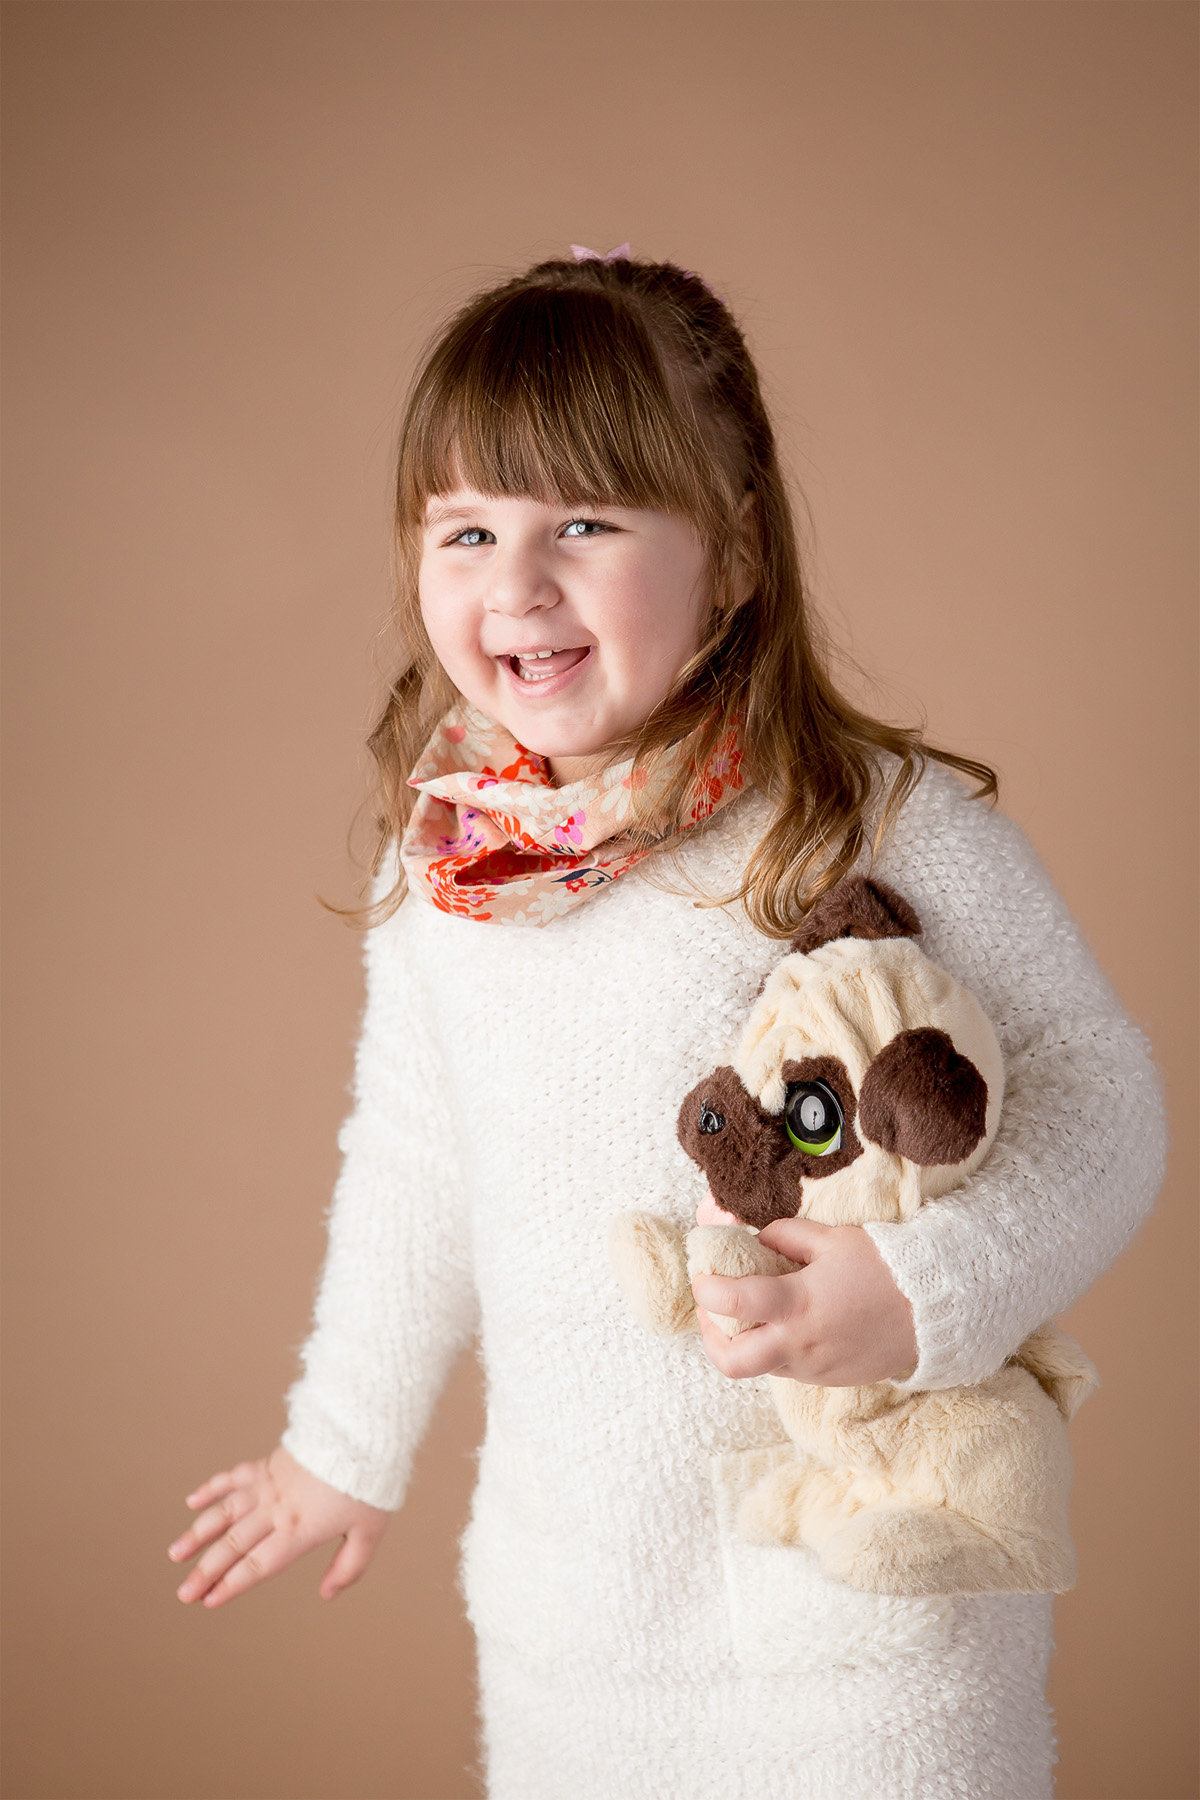 Child studio portrait photography by Hudson Valley children's photographer in Cornwall NY